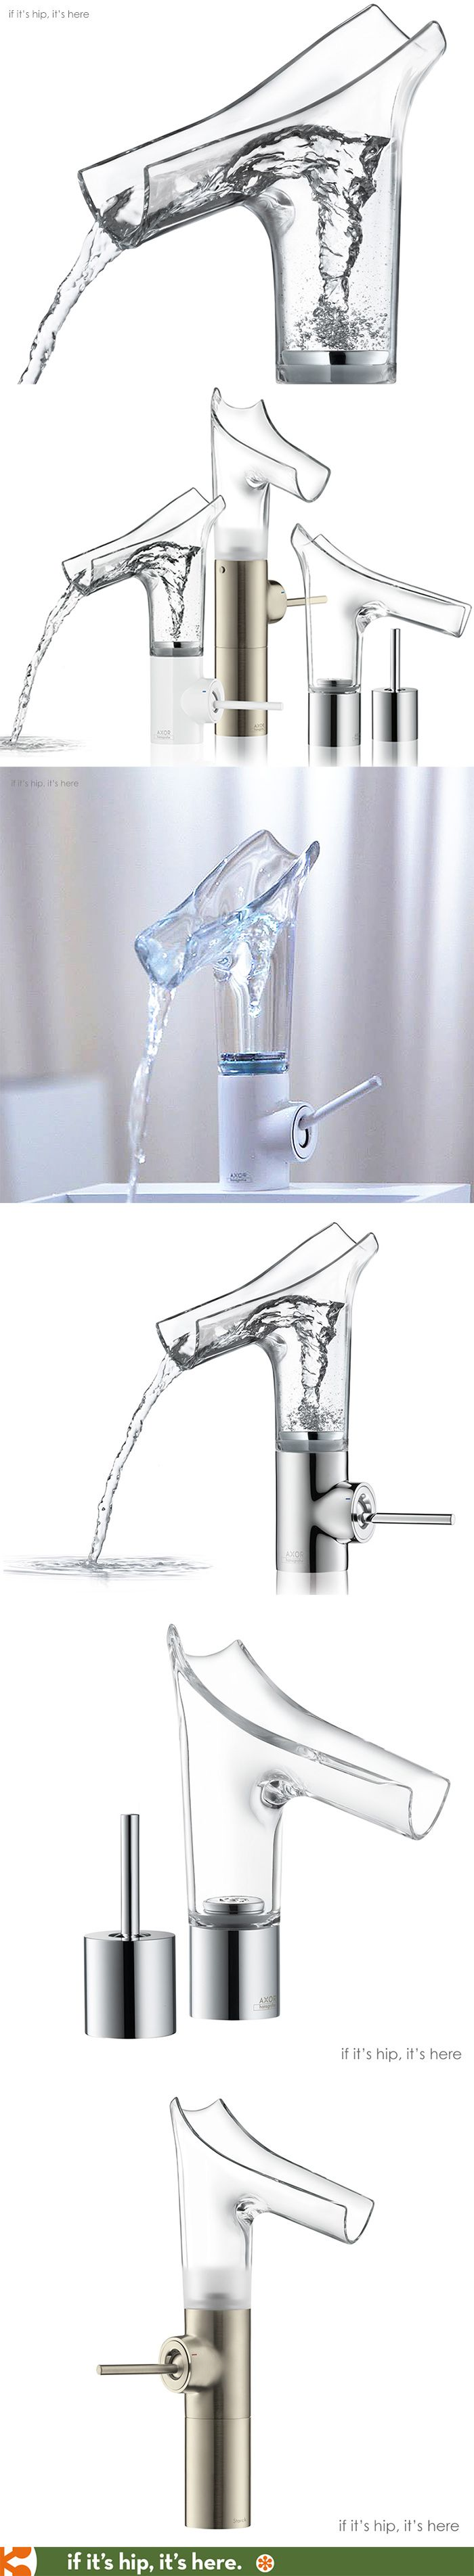 Transparent water faucets unveiled at Salon del Mobile. So cool. Link has more info.